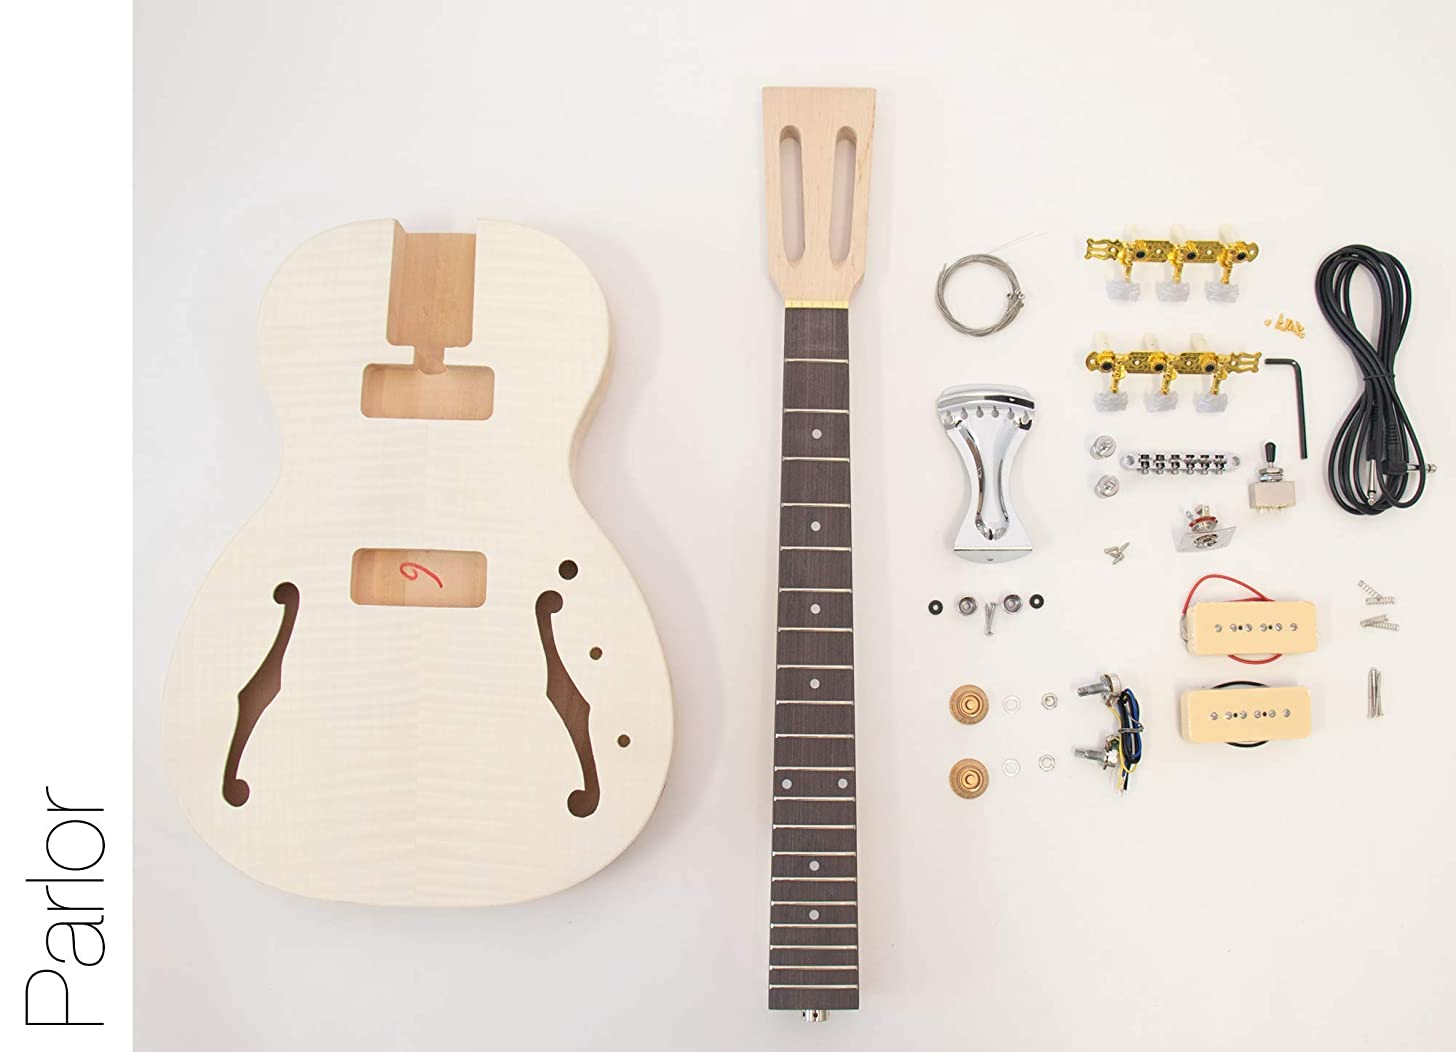 The FretWire DIY Electric Guitar Kit Hollow Body Style Build Your Own Guitar Kit - Parlor